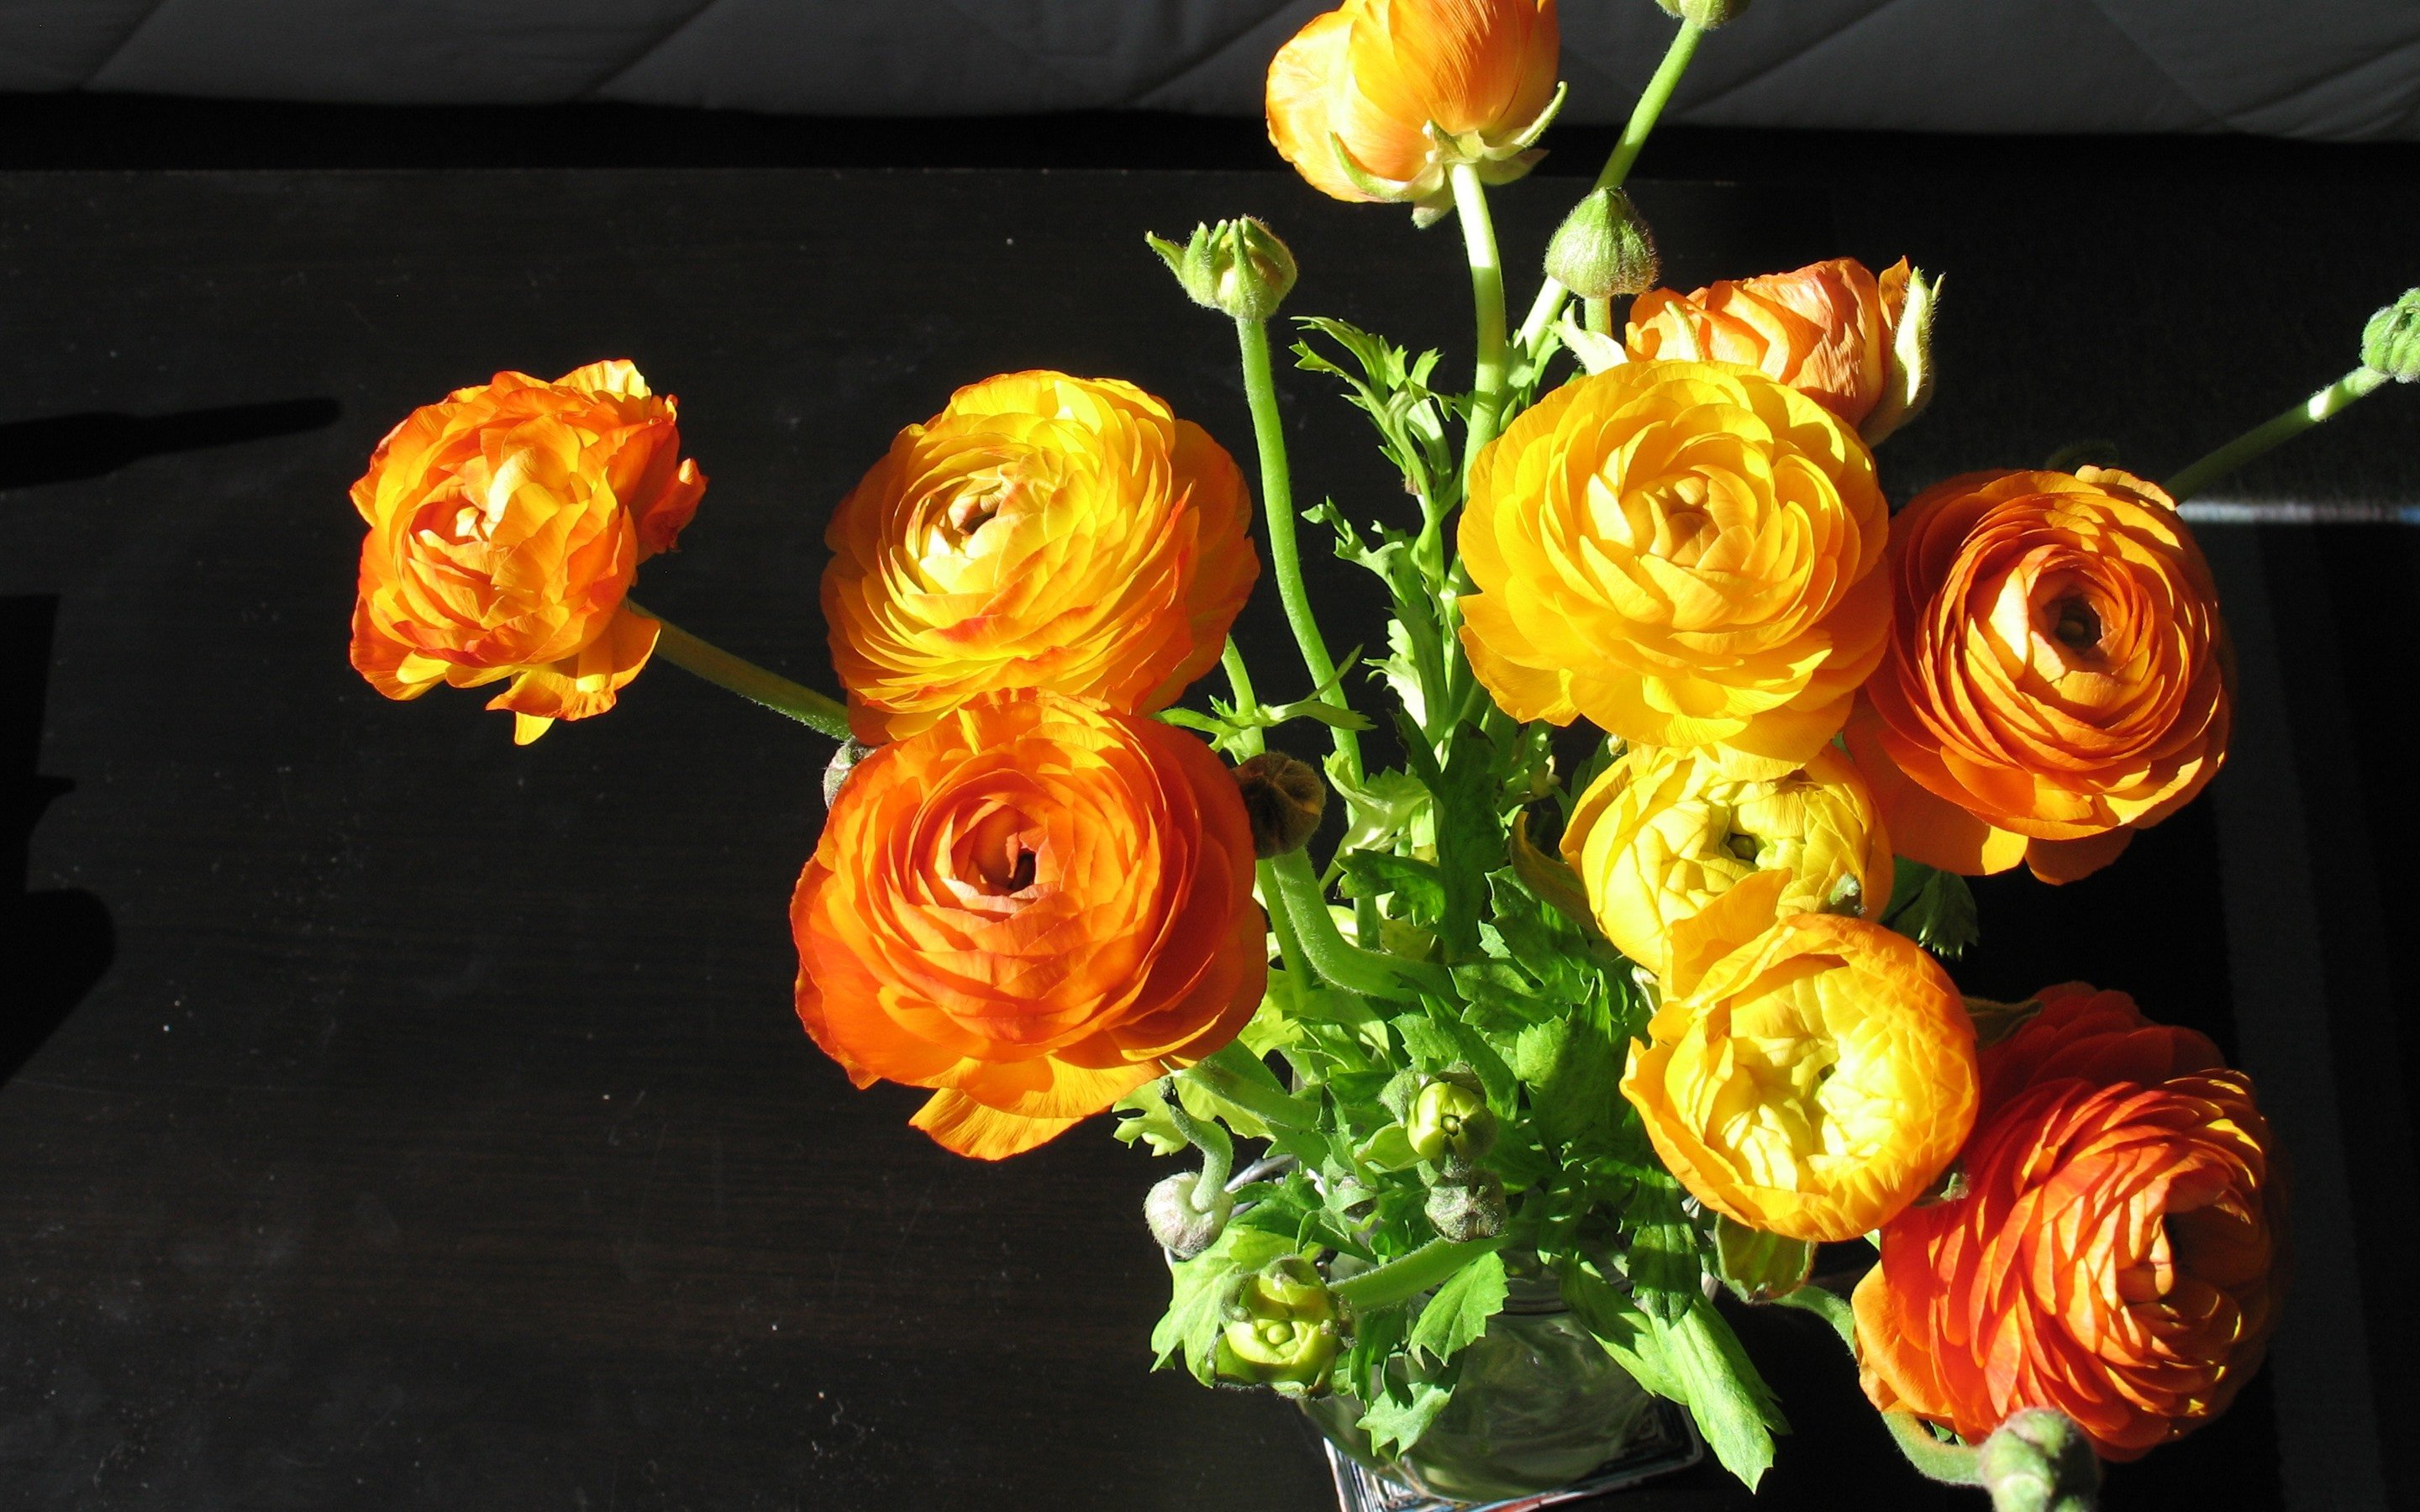 Wallpaper Orange And Yellow Peonies Flowers Bouquet 2880x1800 Hd Picture Image